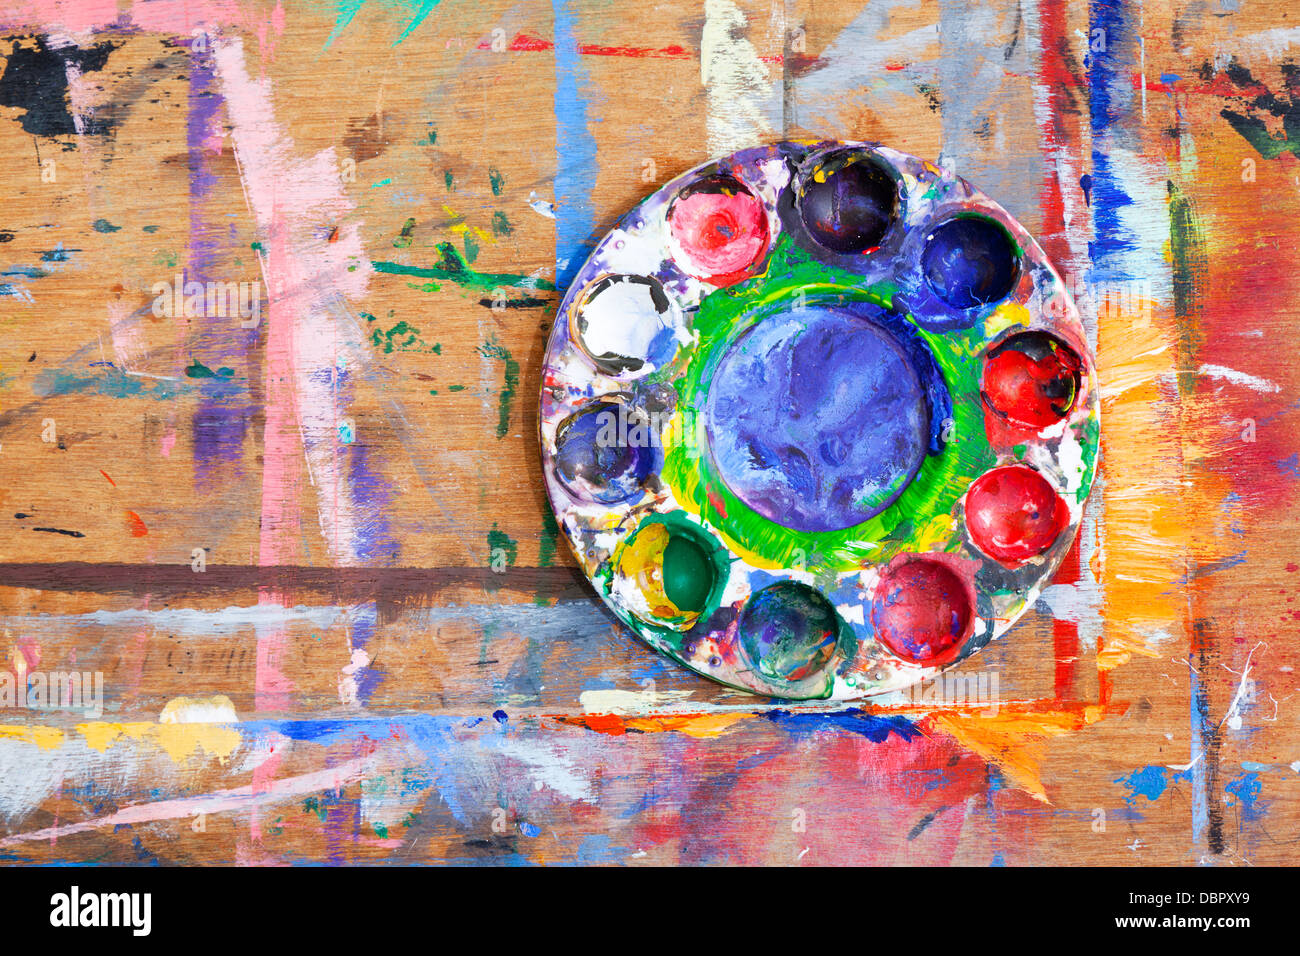 Close-up of a multi-coloured plastic paint palette on a paint splashed wooden board. - Stock Image